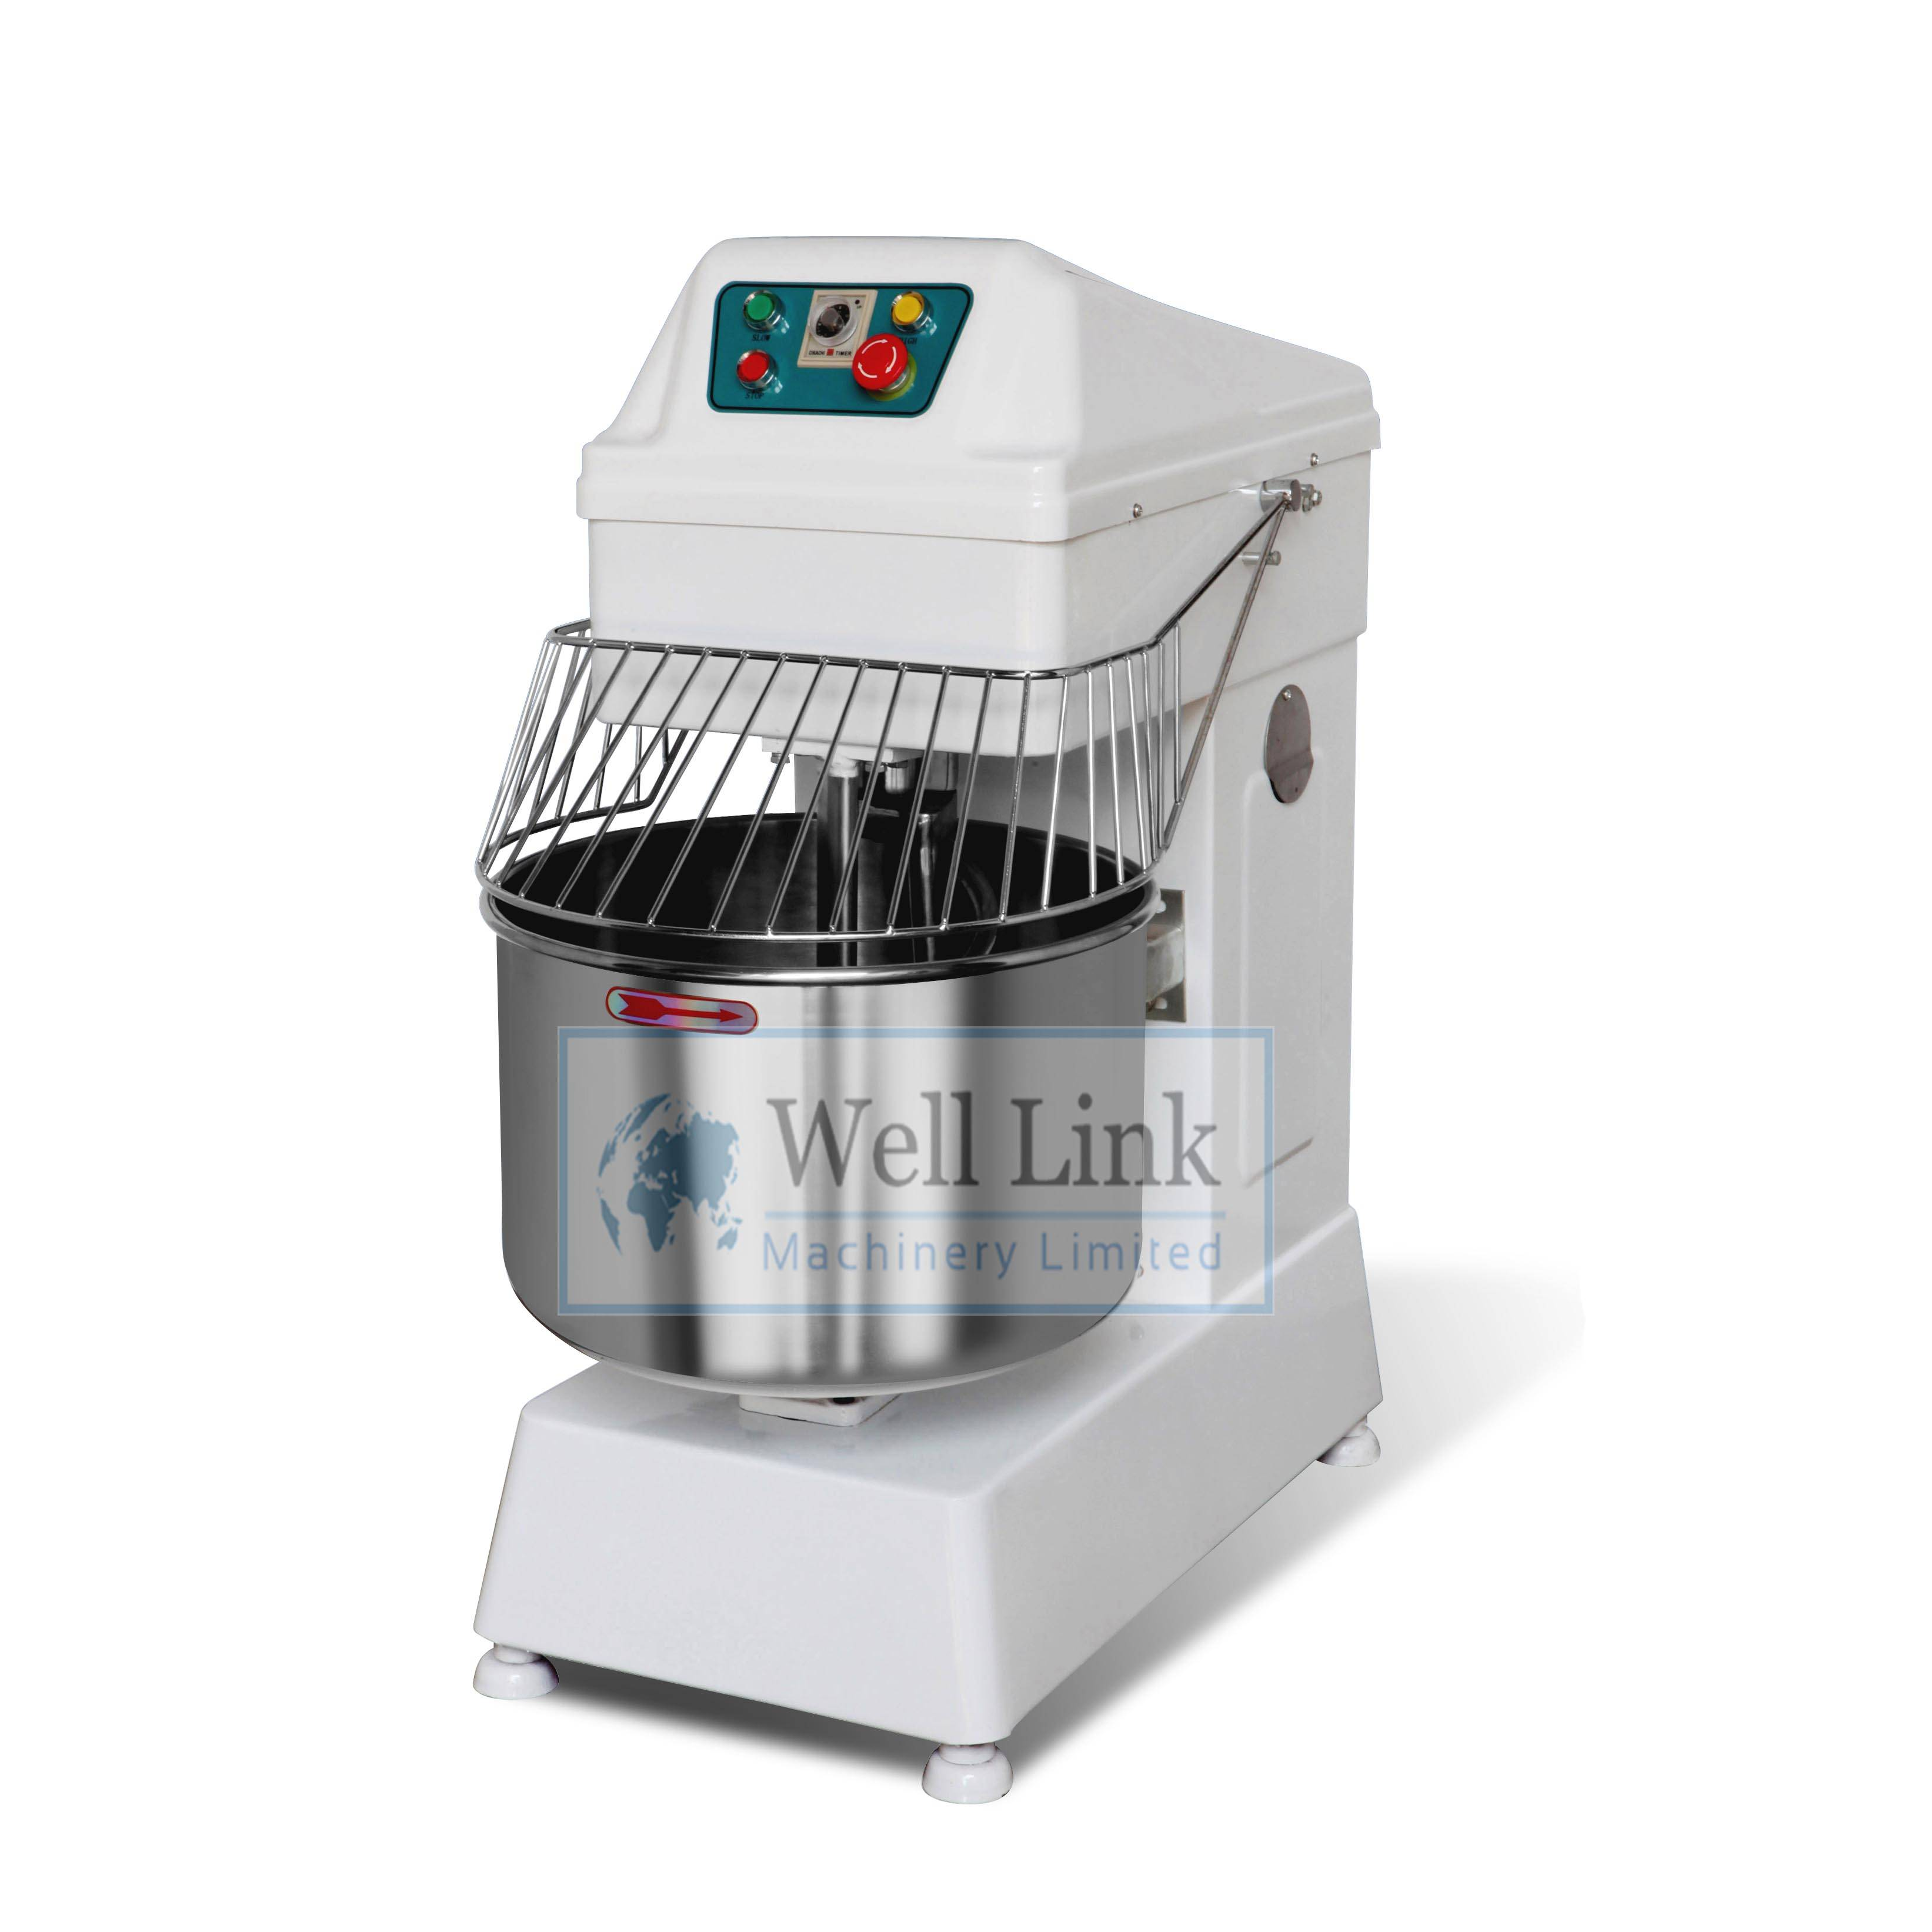 HS30 30 Liter Heavy Duty Stainless Steel Spiral Bread kneading Mixer